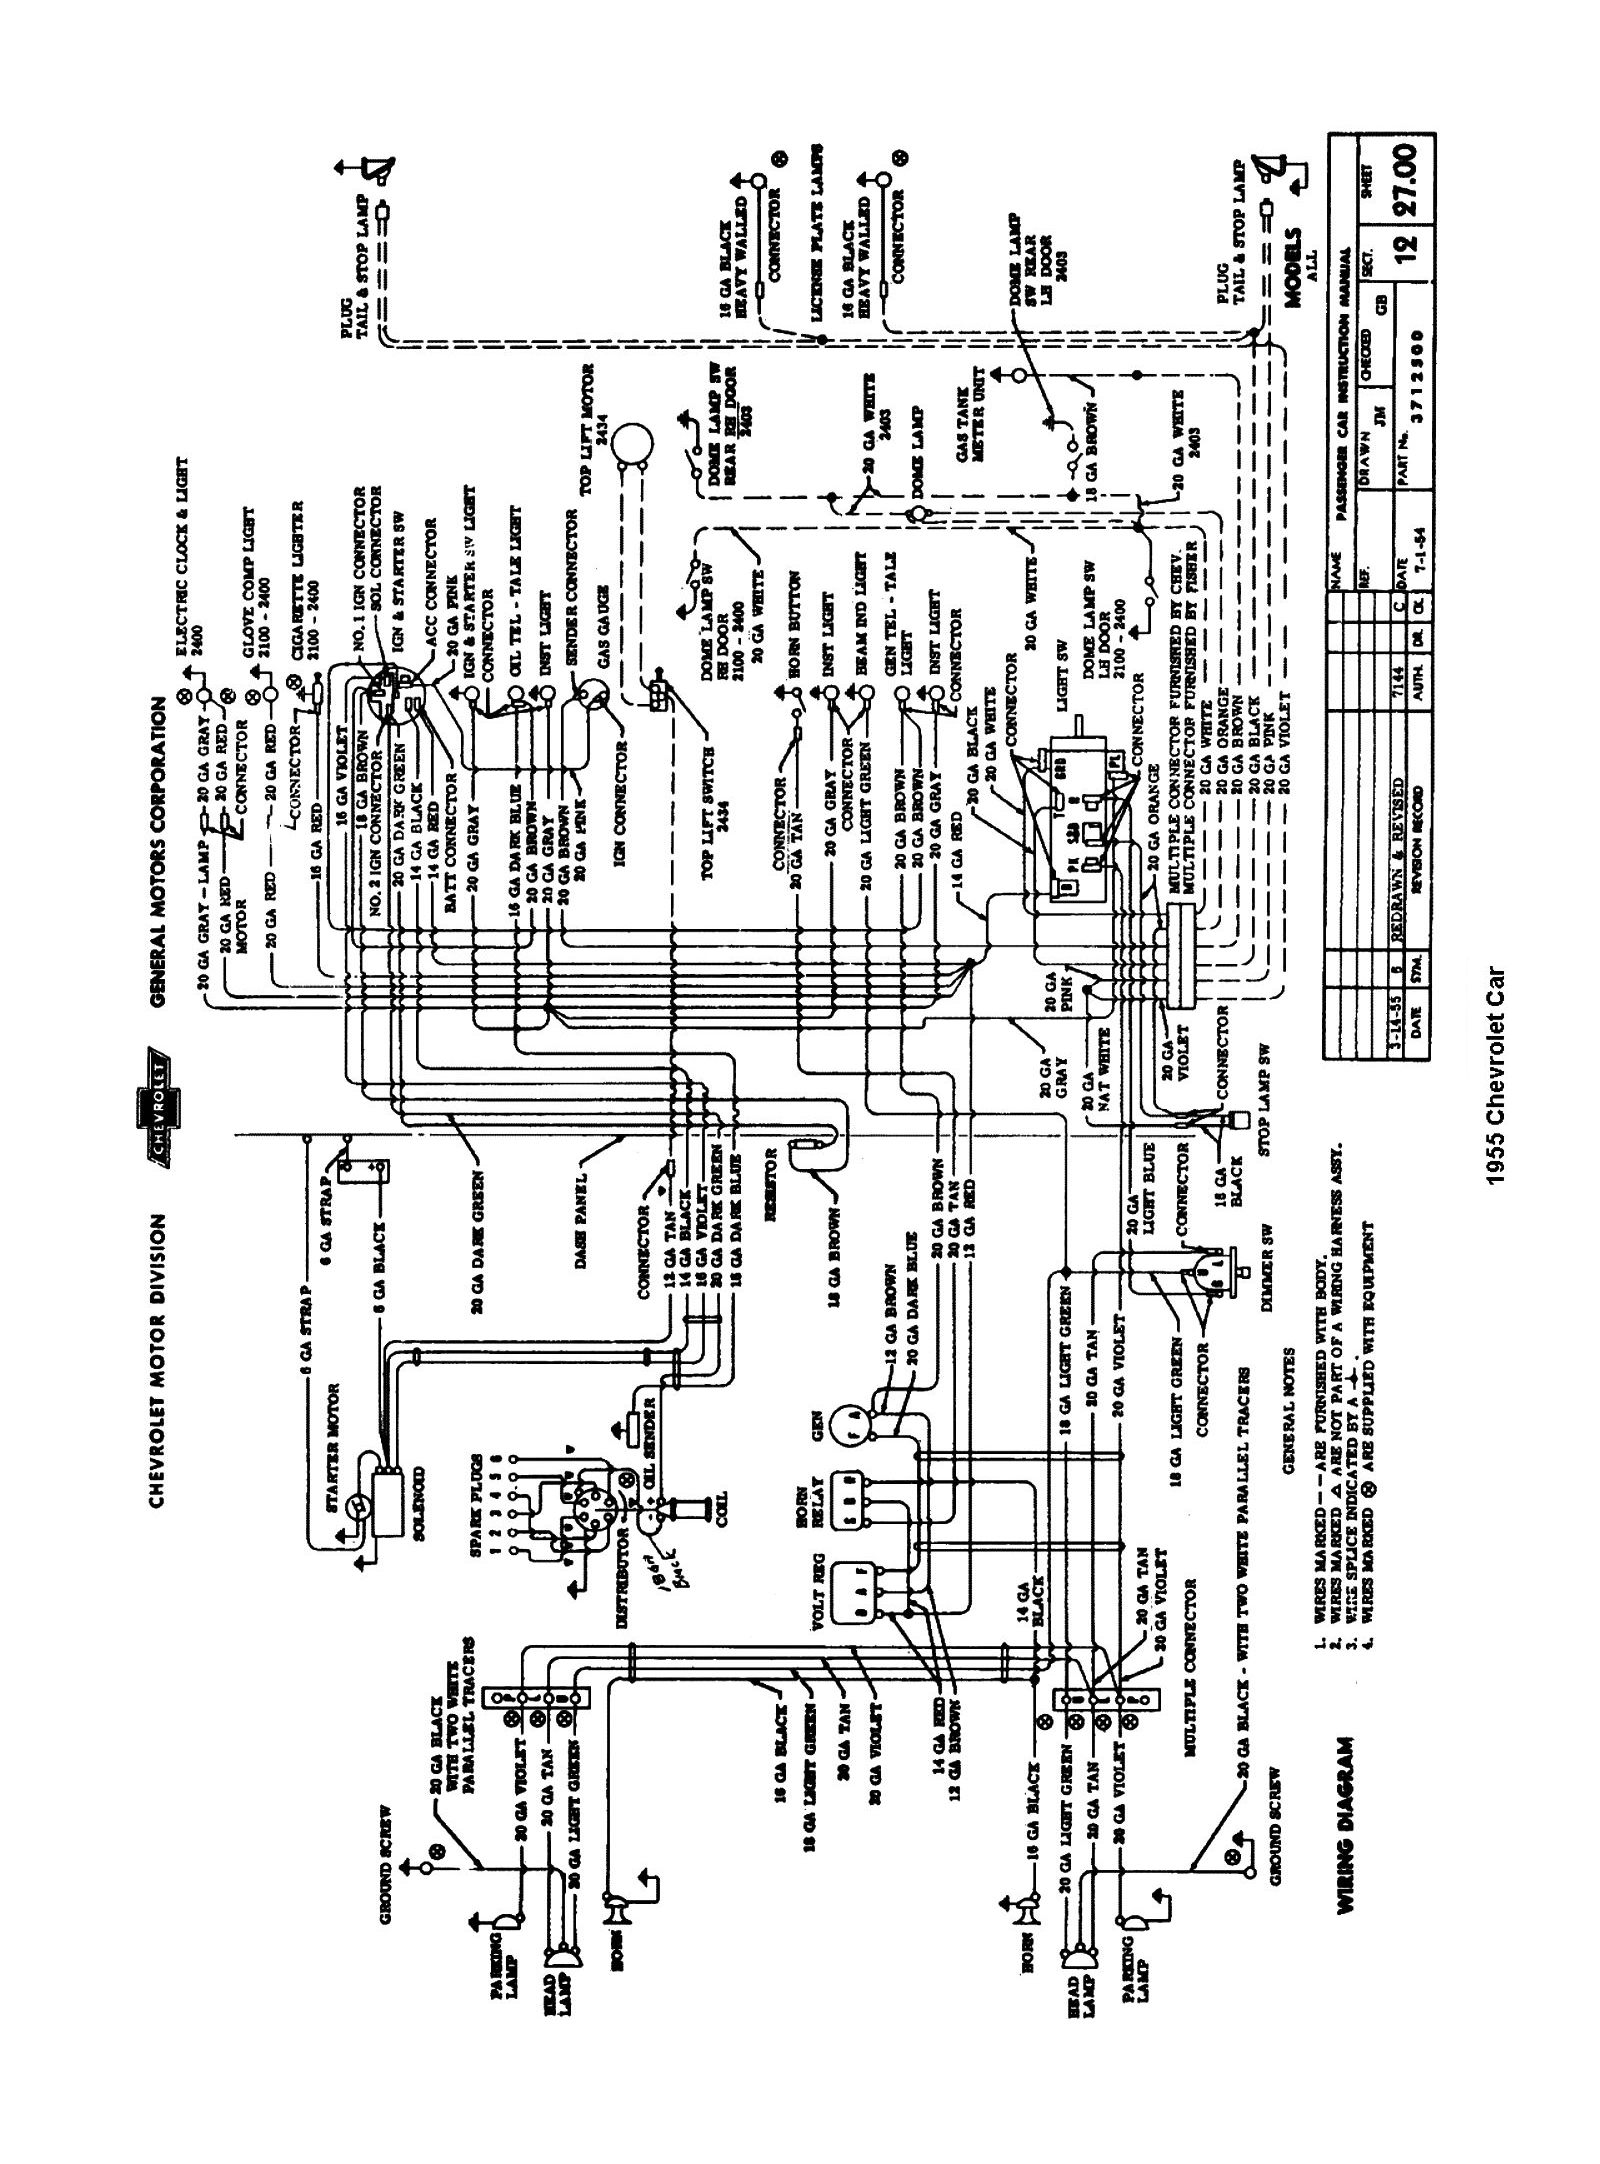 2006 Dodge Ram 3500 Radio Wiring Diagram For 2007 Caliber At 2001 With further 1955 1959 Chevy Truck Wiring Diagram likewise 2005 Toyota Highlander Thermostat Location further Discussion D91 ds665233 likewise Asetest12. on 2004 toyota highlander wiring diagram